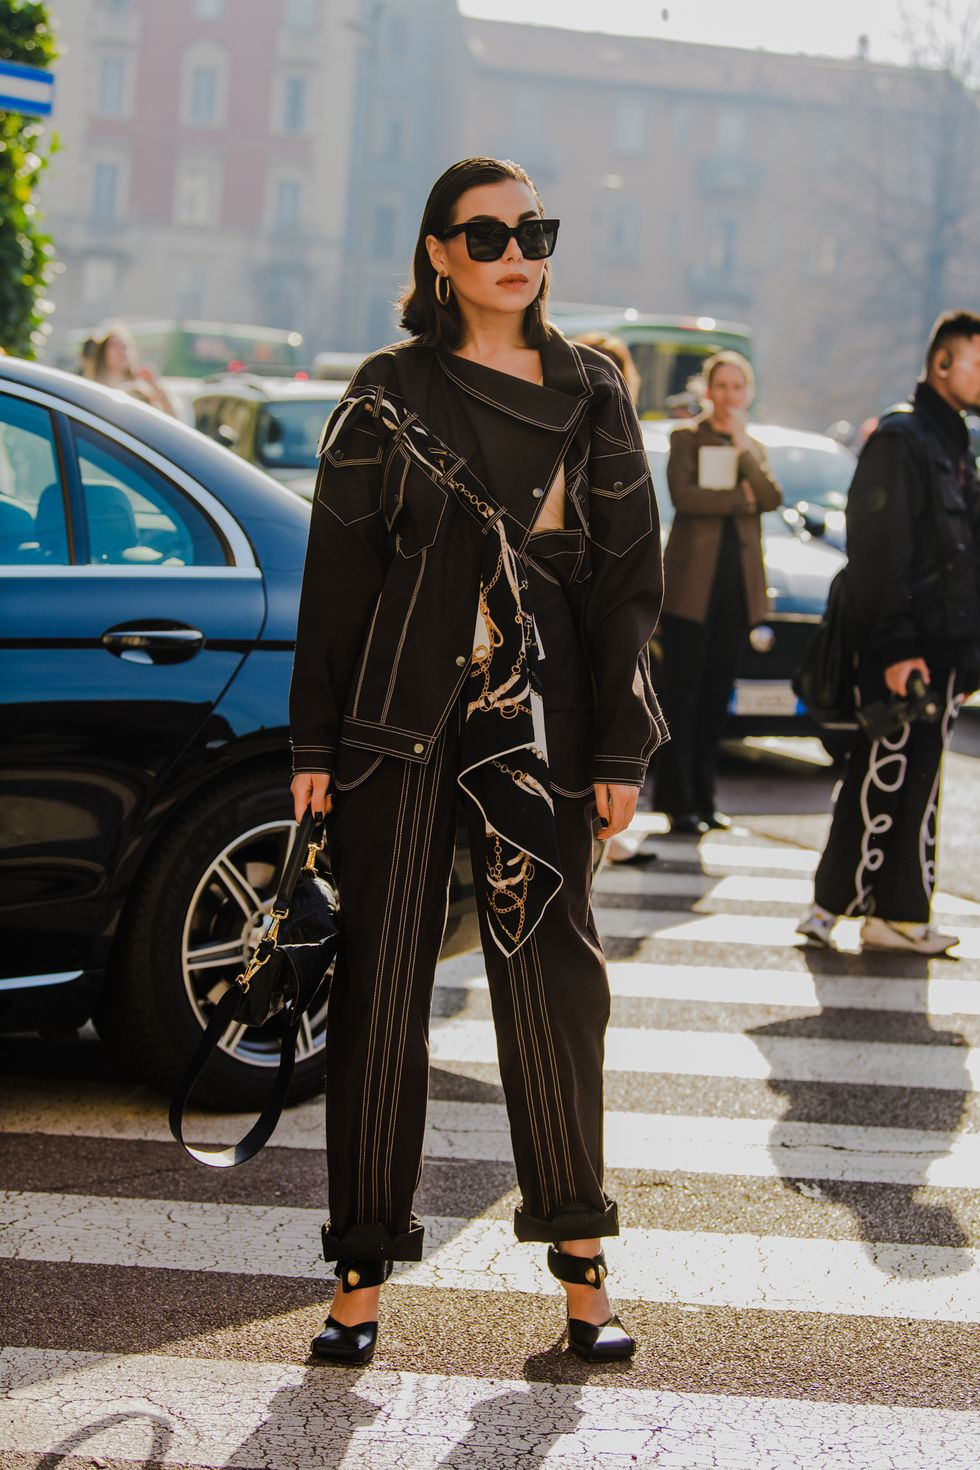 Milan Fashion Week 2020 milan fashion week 2020 The Street Style Trends From Milan Fashion Week 2020 fw20 mfw milan street style tyler joe day 4 025 1582486406